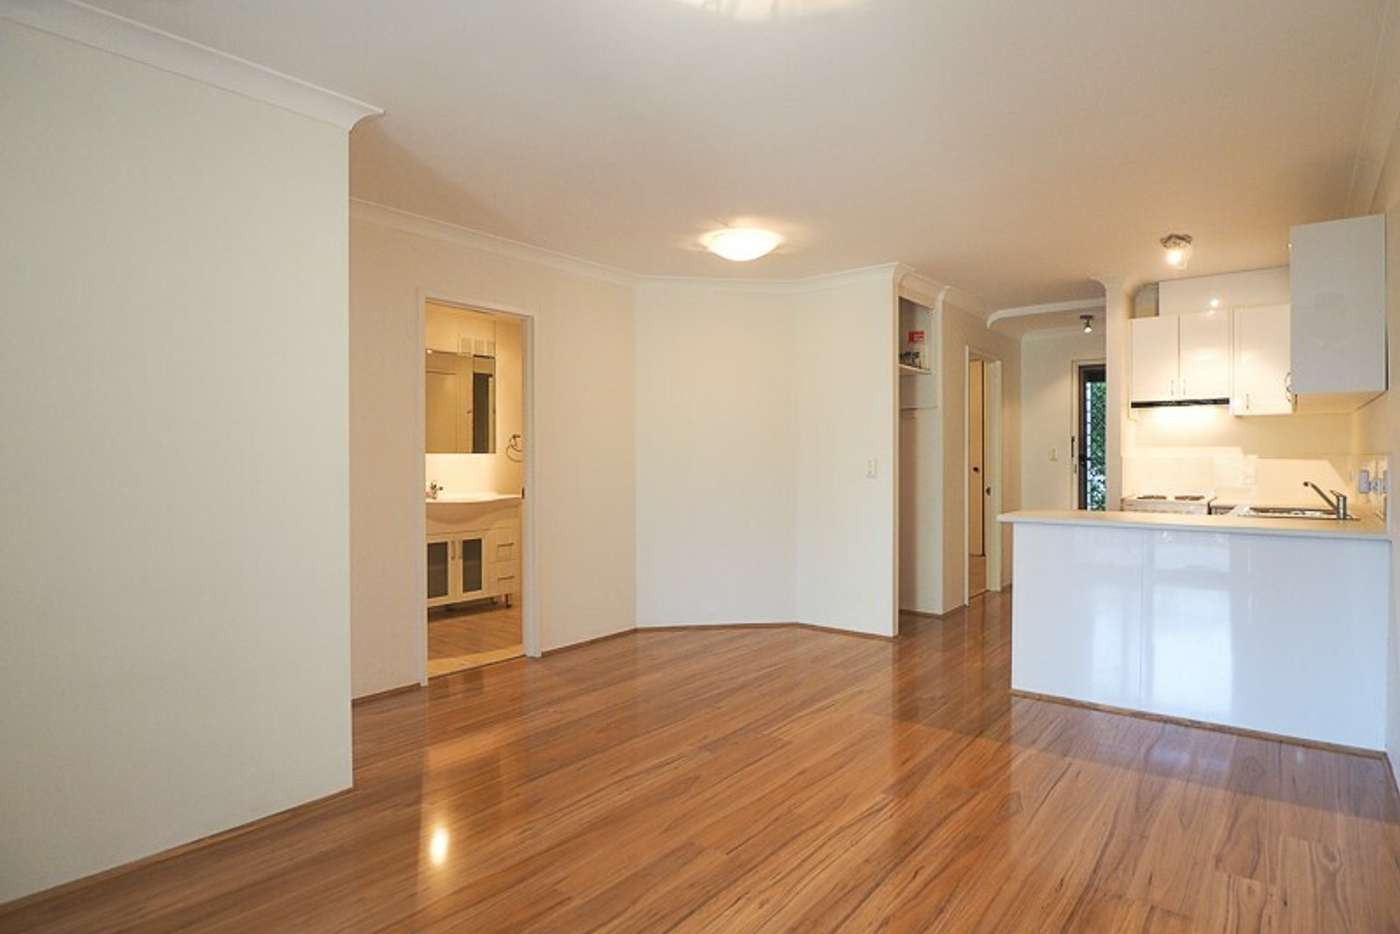 Main view of Homely apartment listing, 2/55 Elizabeth Street, South Perth WA 6151